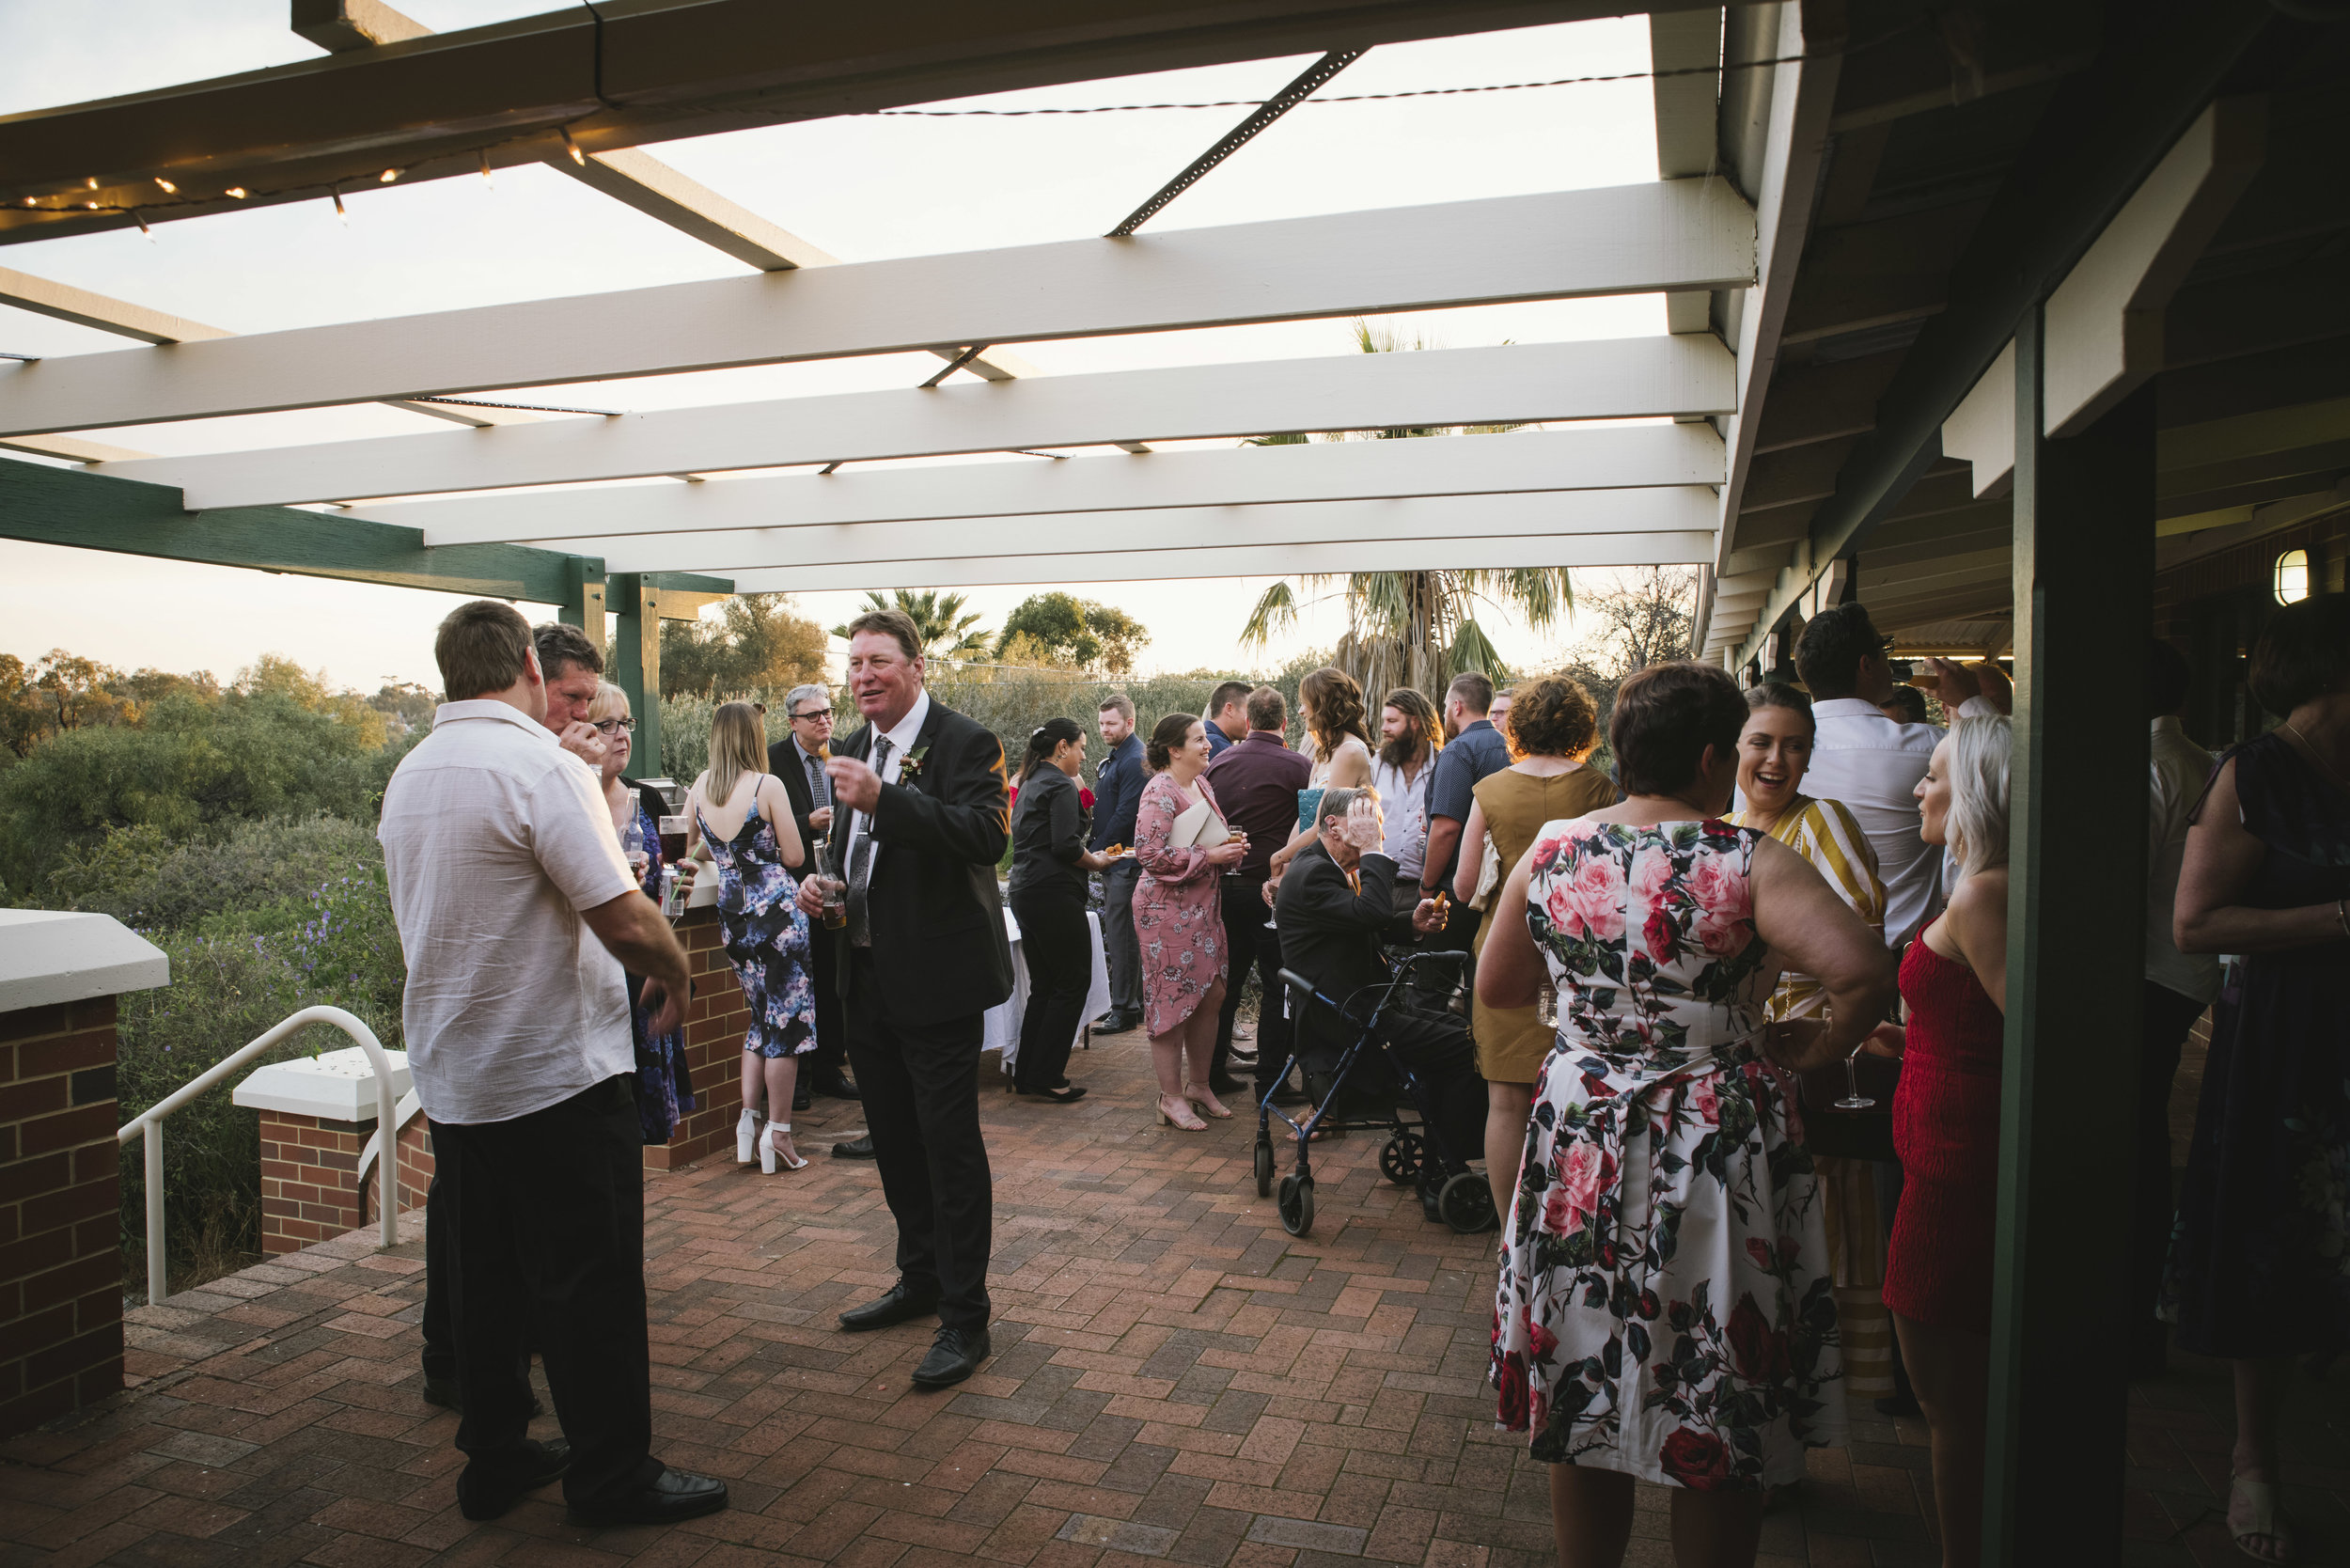 Angie Roe Photography Wheatbelt Avon Valley Farm Wedding (50).jpg